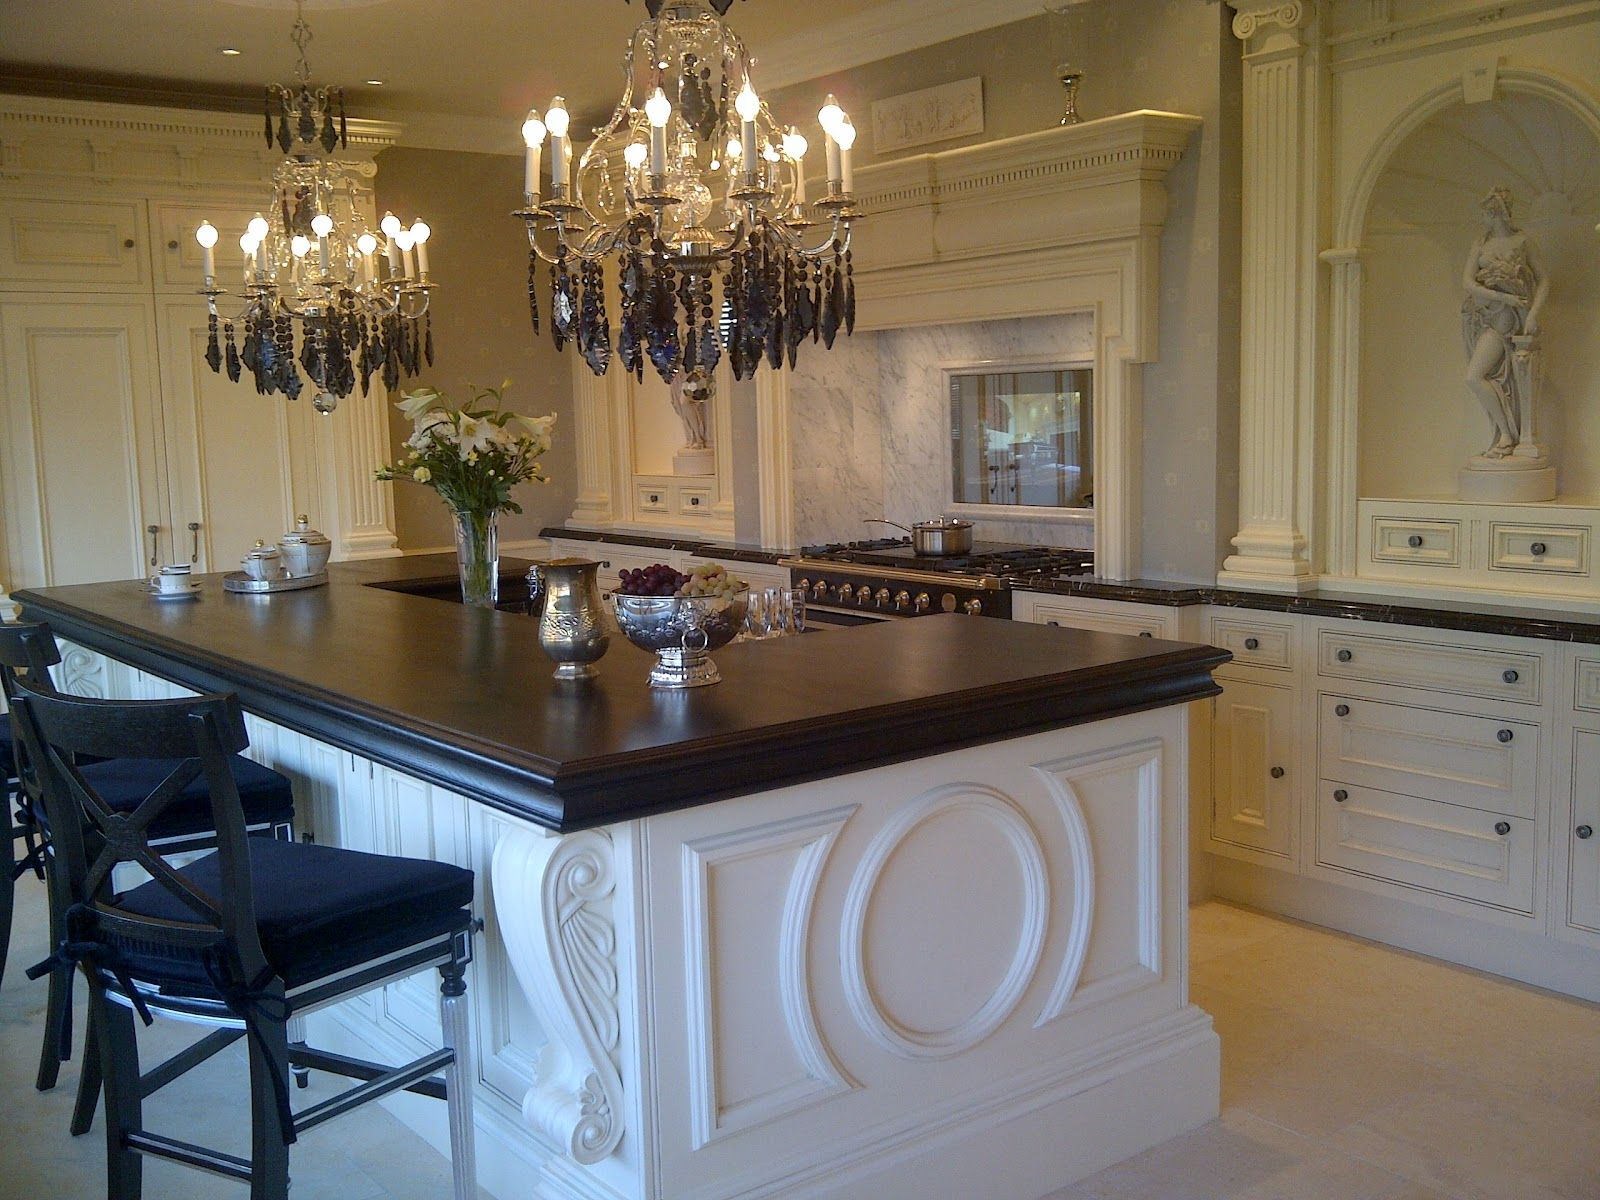 TRADITION INTERIORS OF NOTTINGHAM: Luxury Kitchen By Clive Christian Luxury  Architectural Furniture